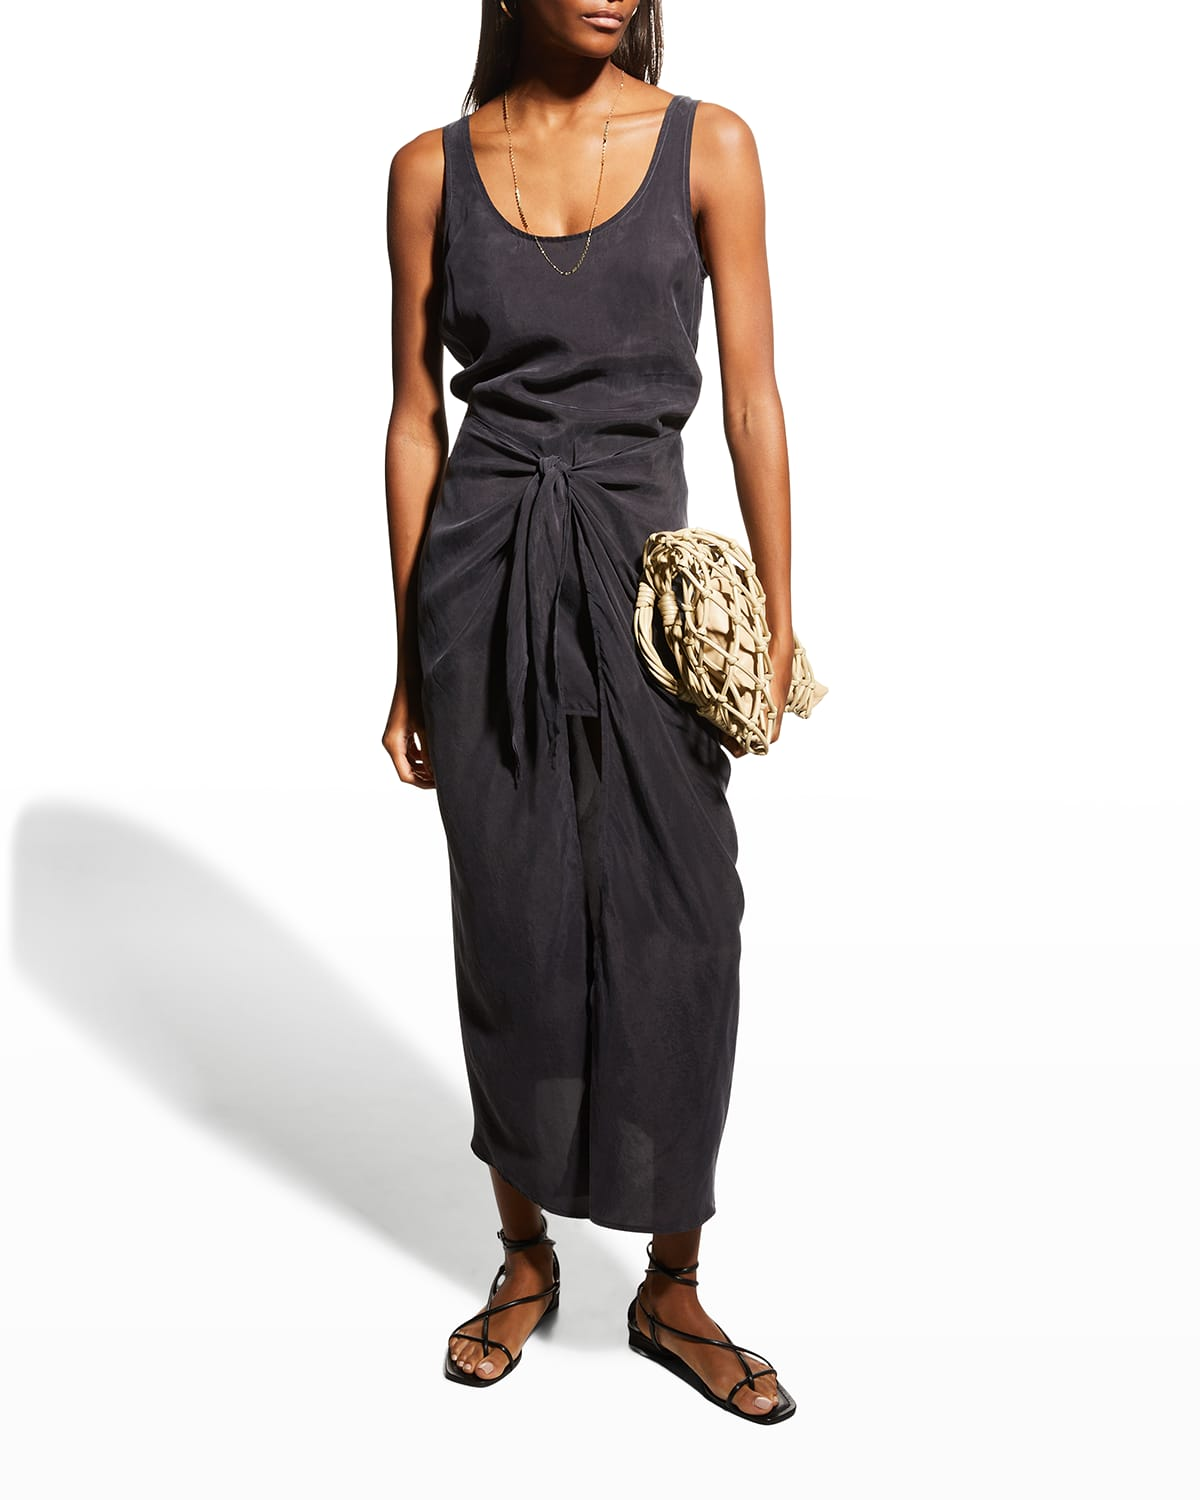 The DK Midi Wrap Cover-Up Dress